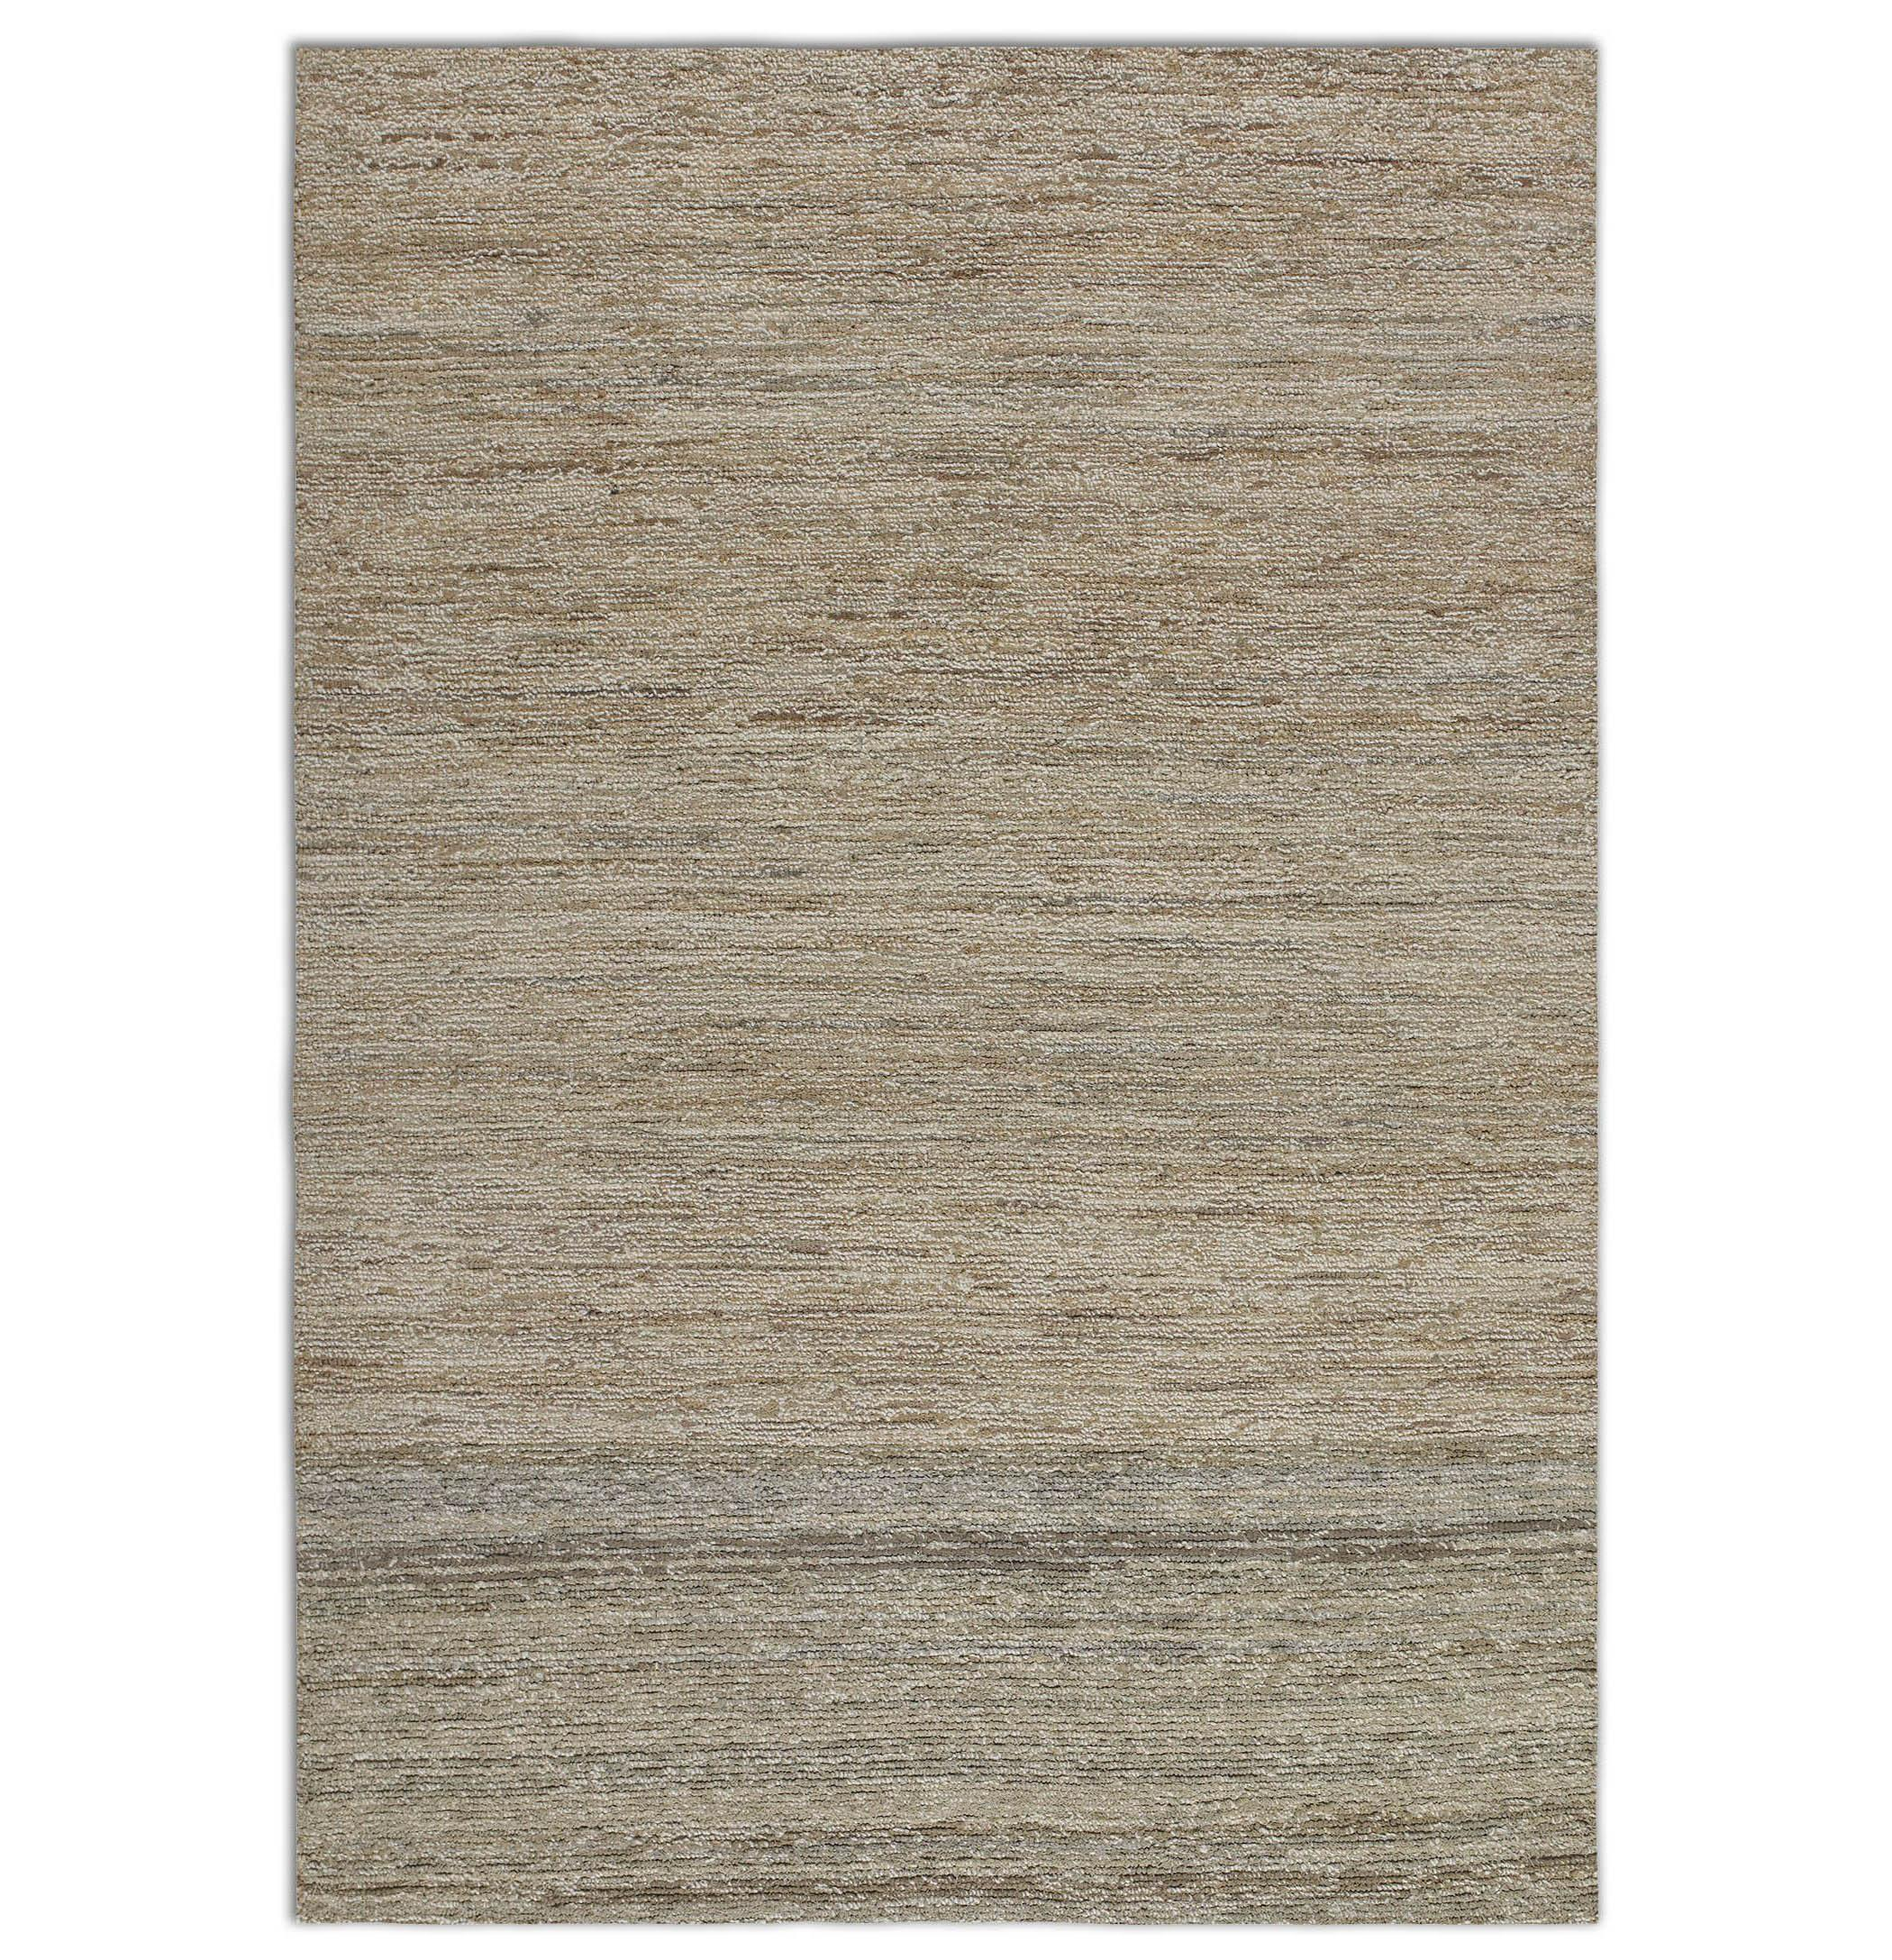 Uttermost Rugs Genoa 8 X 10 Rug - Tan - Item Number: 73053-8